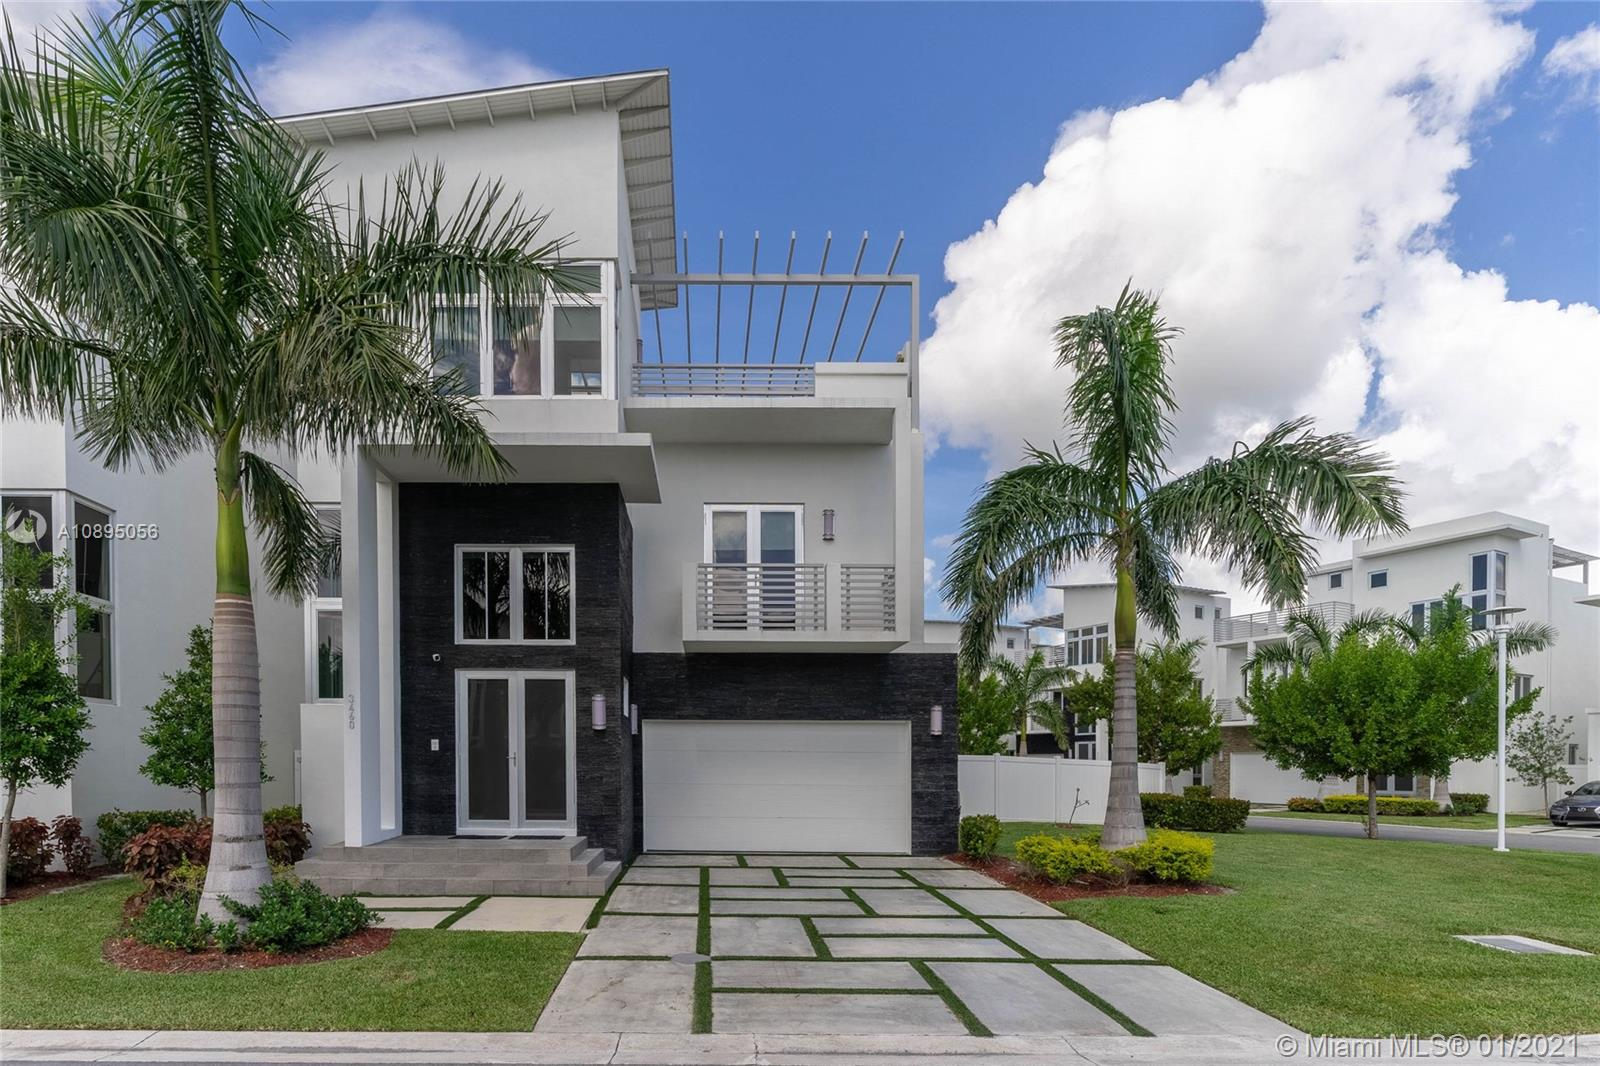 Oasis Park Square - 3460 NW 84 Ave, Doral, FL 33122